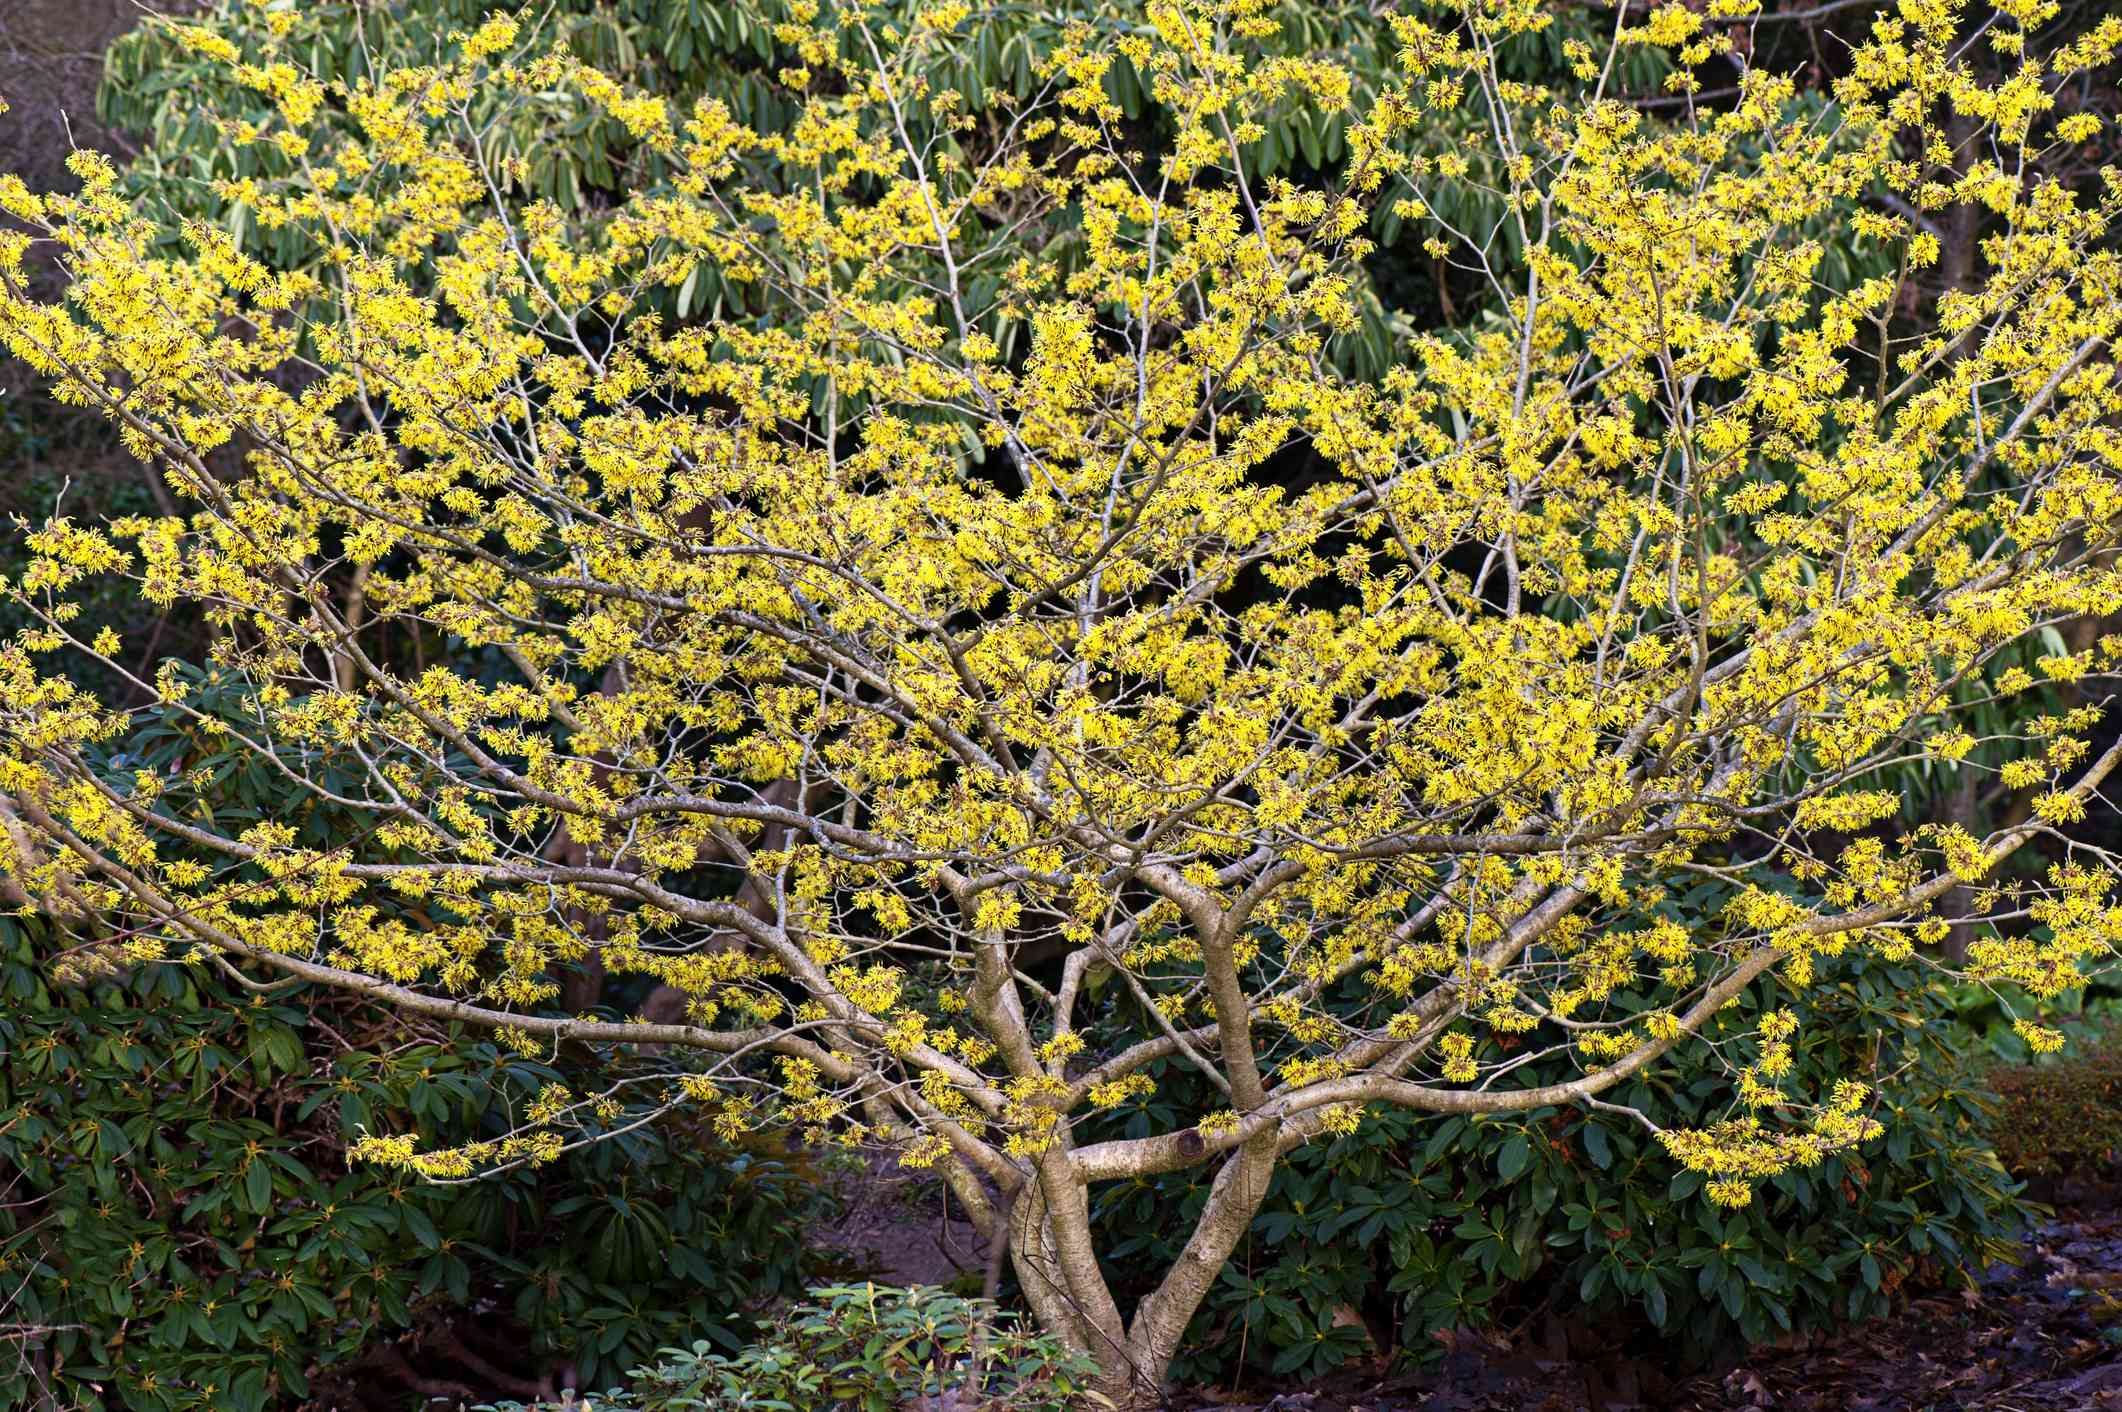 A short and squat witch hazel tree with yellow flowers.